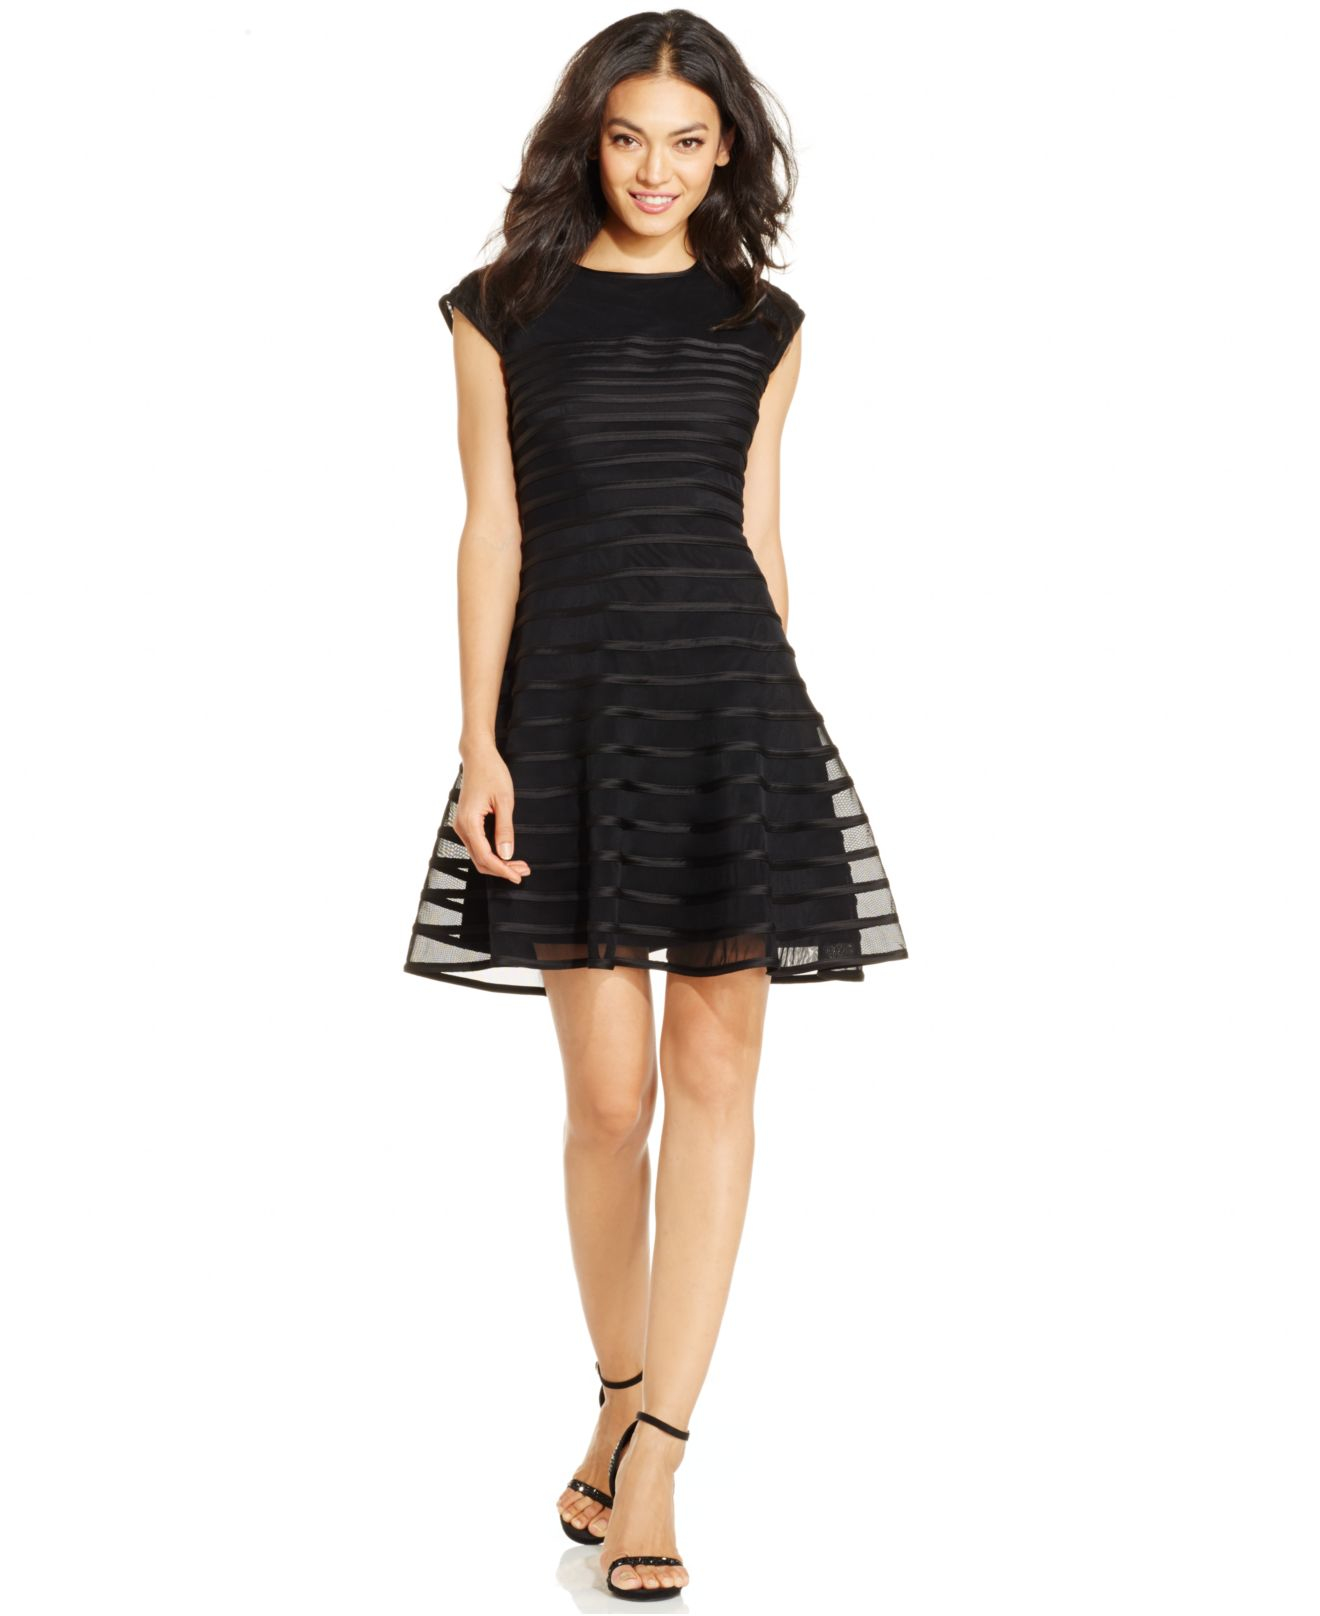 a204688462caa Betsy & Adam Cap-sleeve Ombre-stripe Dress in Black - Lyst